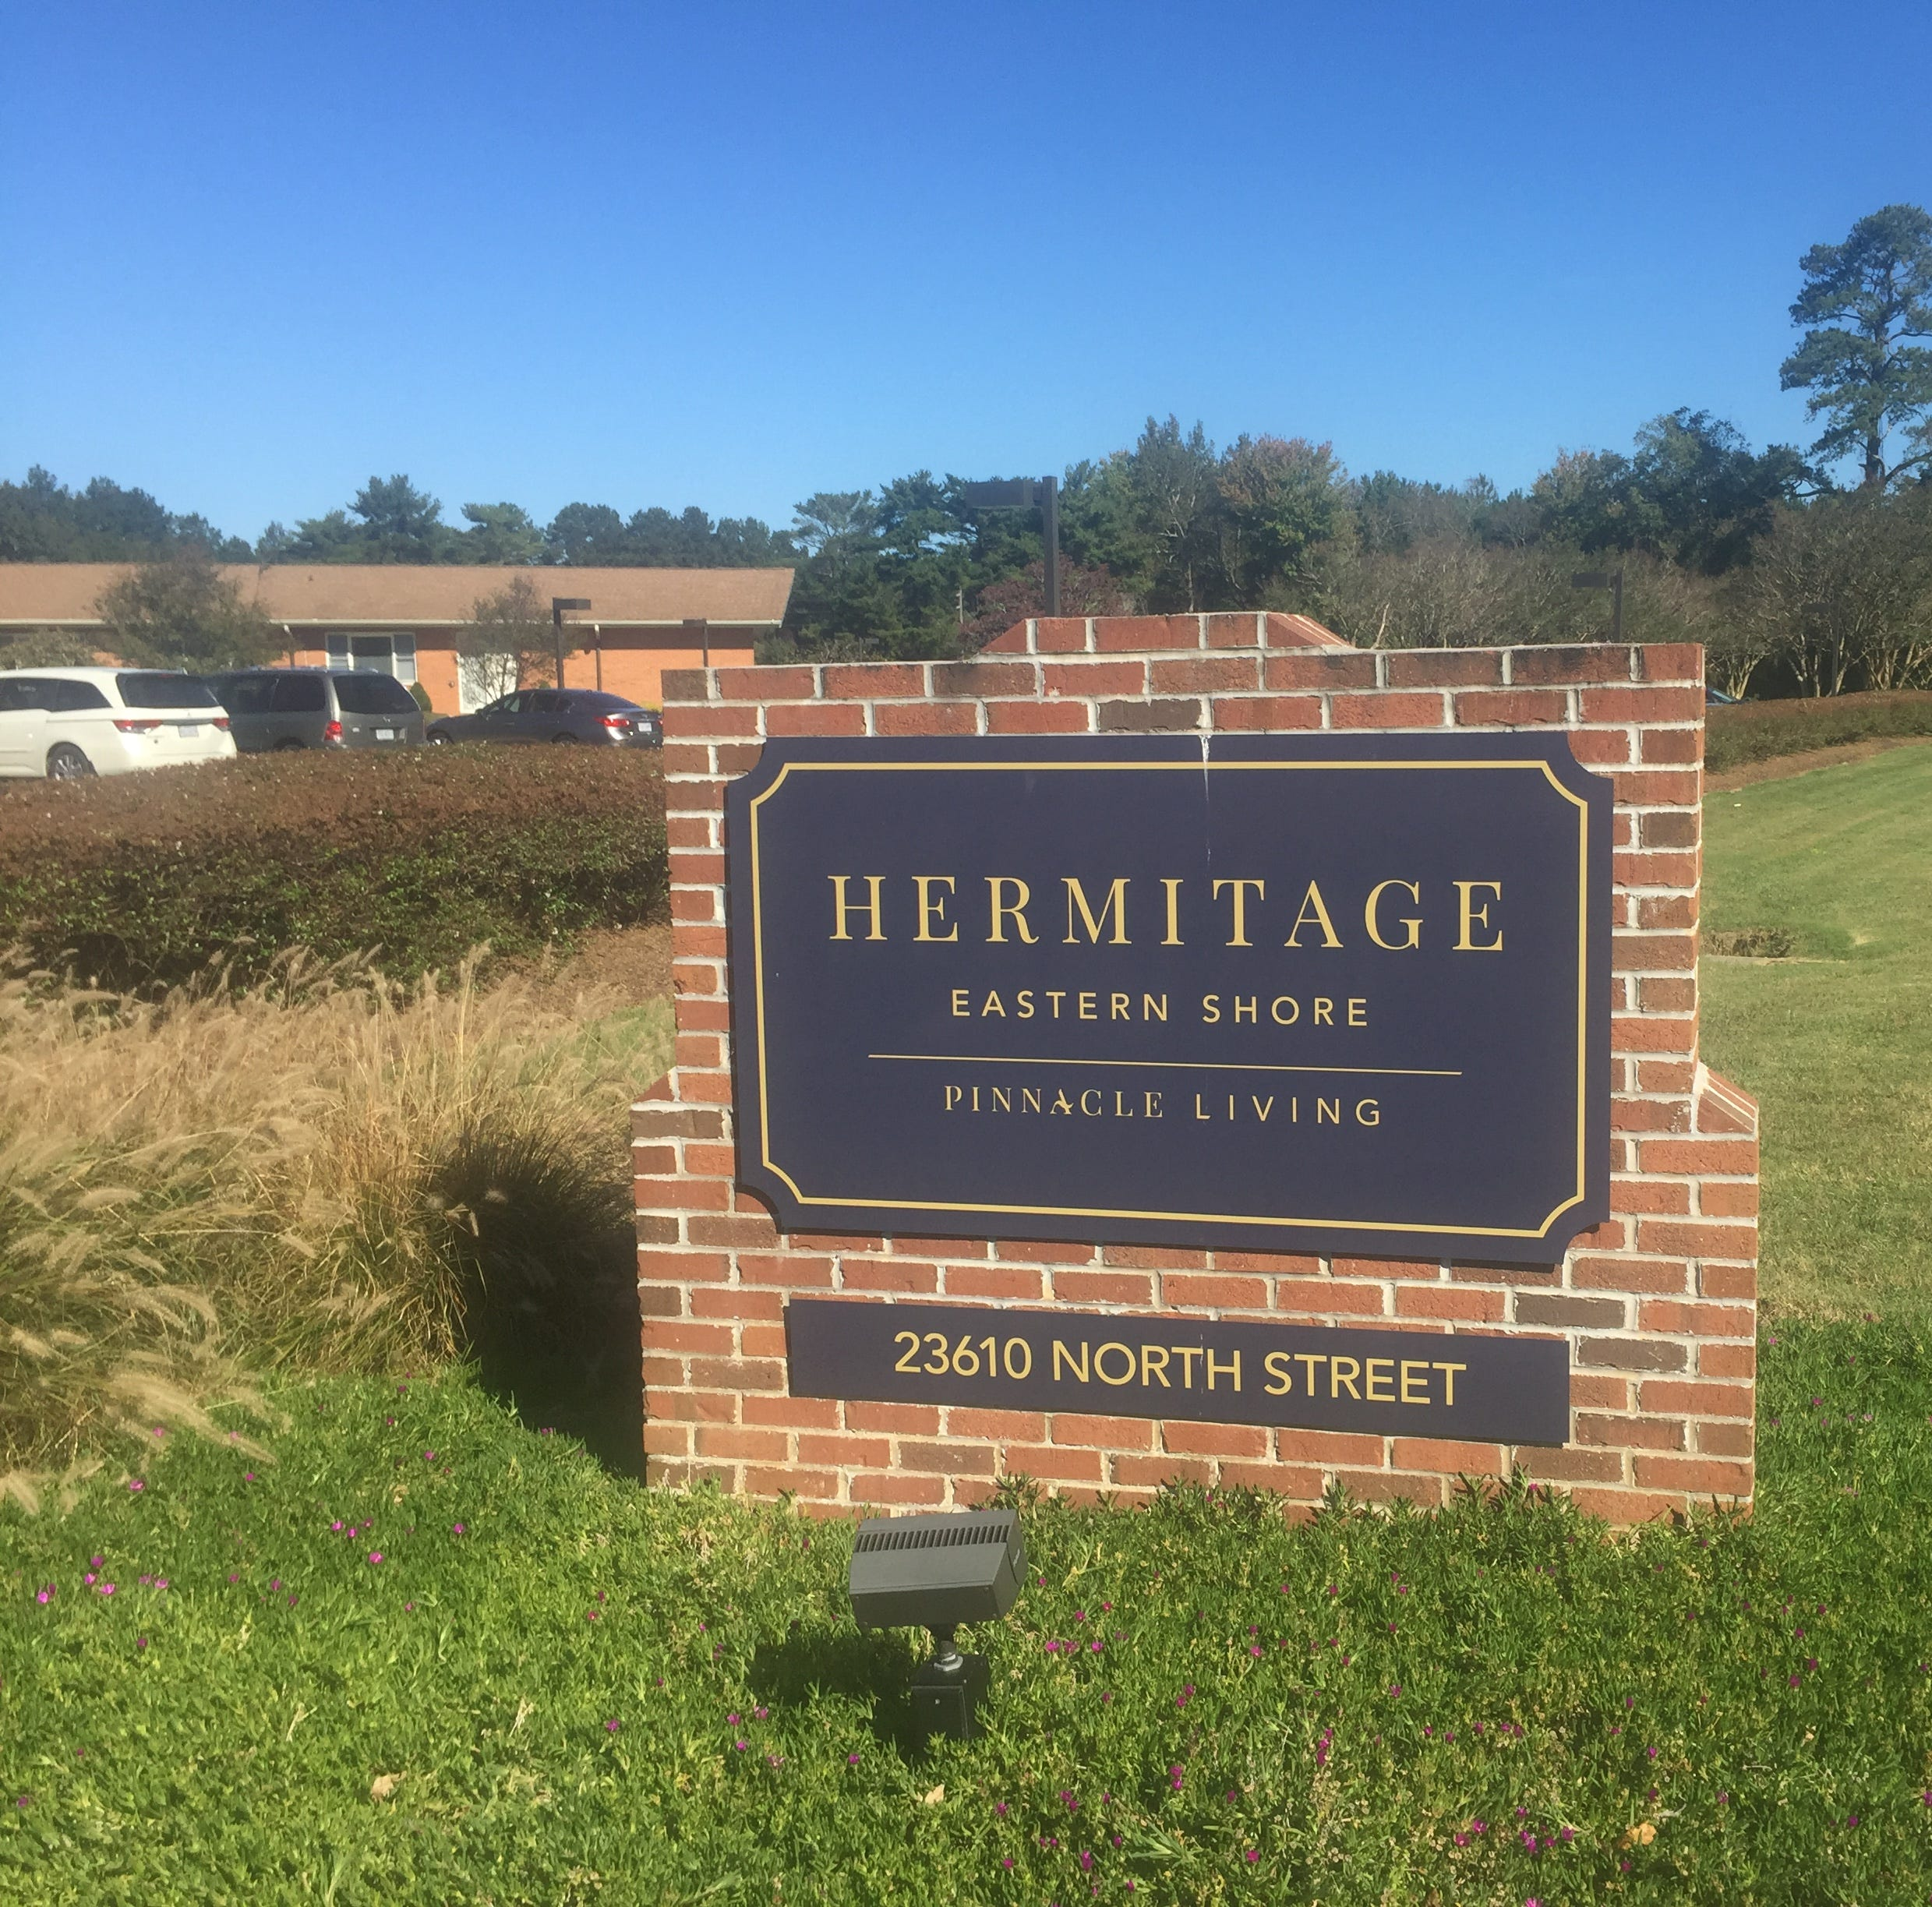 Hermitage sale likely means fewer jobs